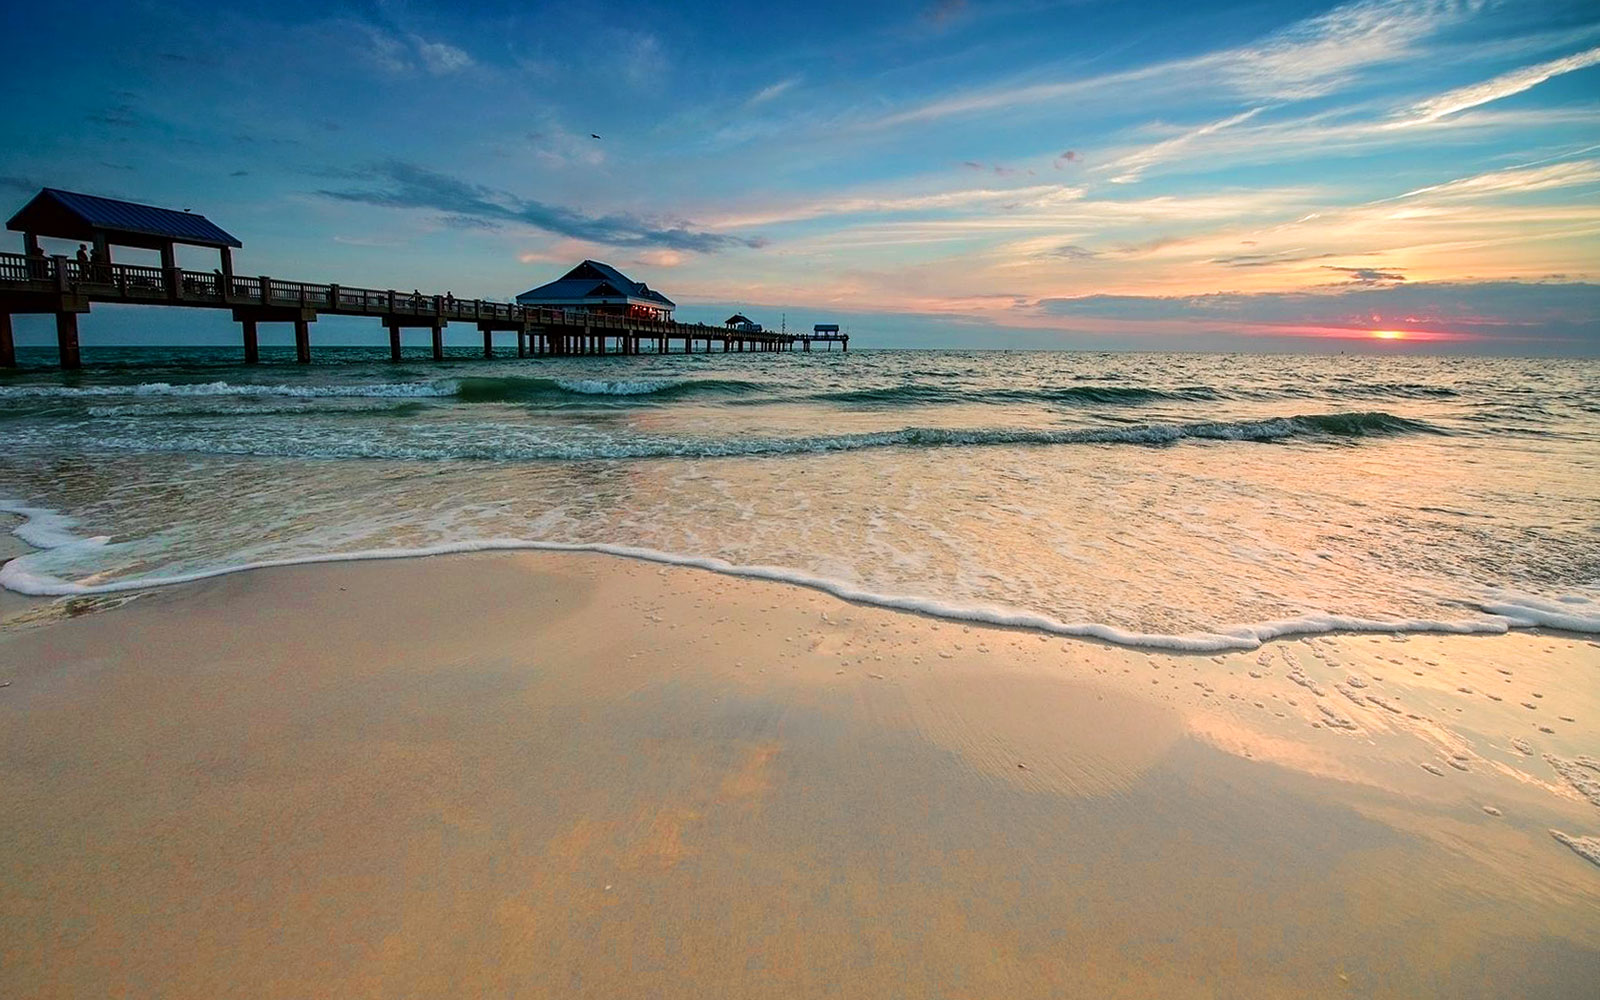 Real Estate Clearwater Beach FL | Homes for Sale community image